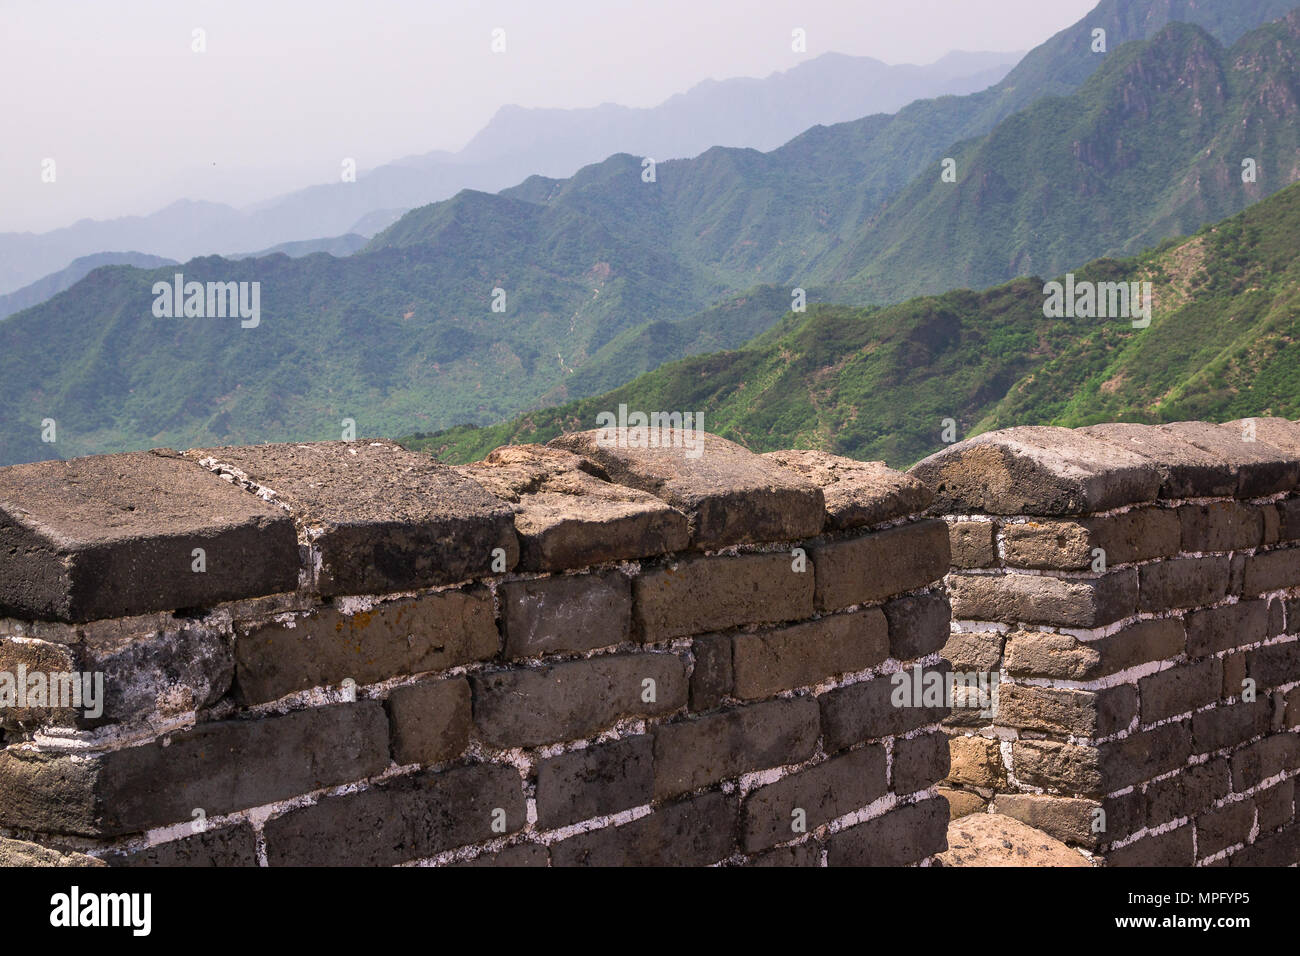 The Great Wall of China - Stock Image